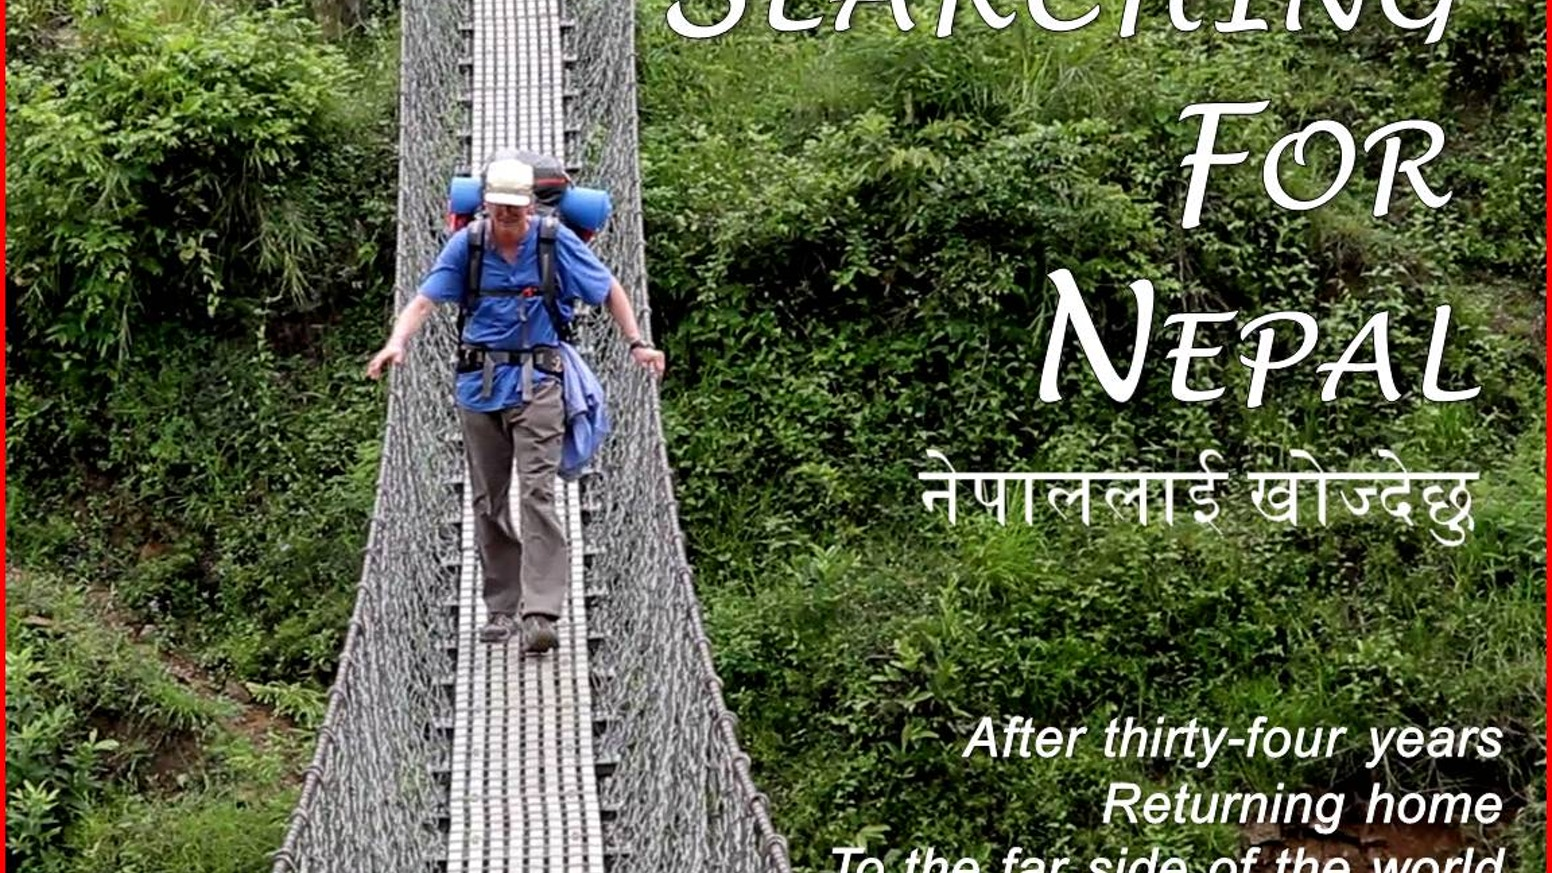 DOCUMENTARY    After the Maoist civil war, a former Peace Corps volunteer returns to Nepal, searching for his long-lost adopted family.